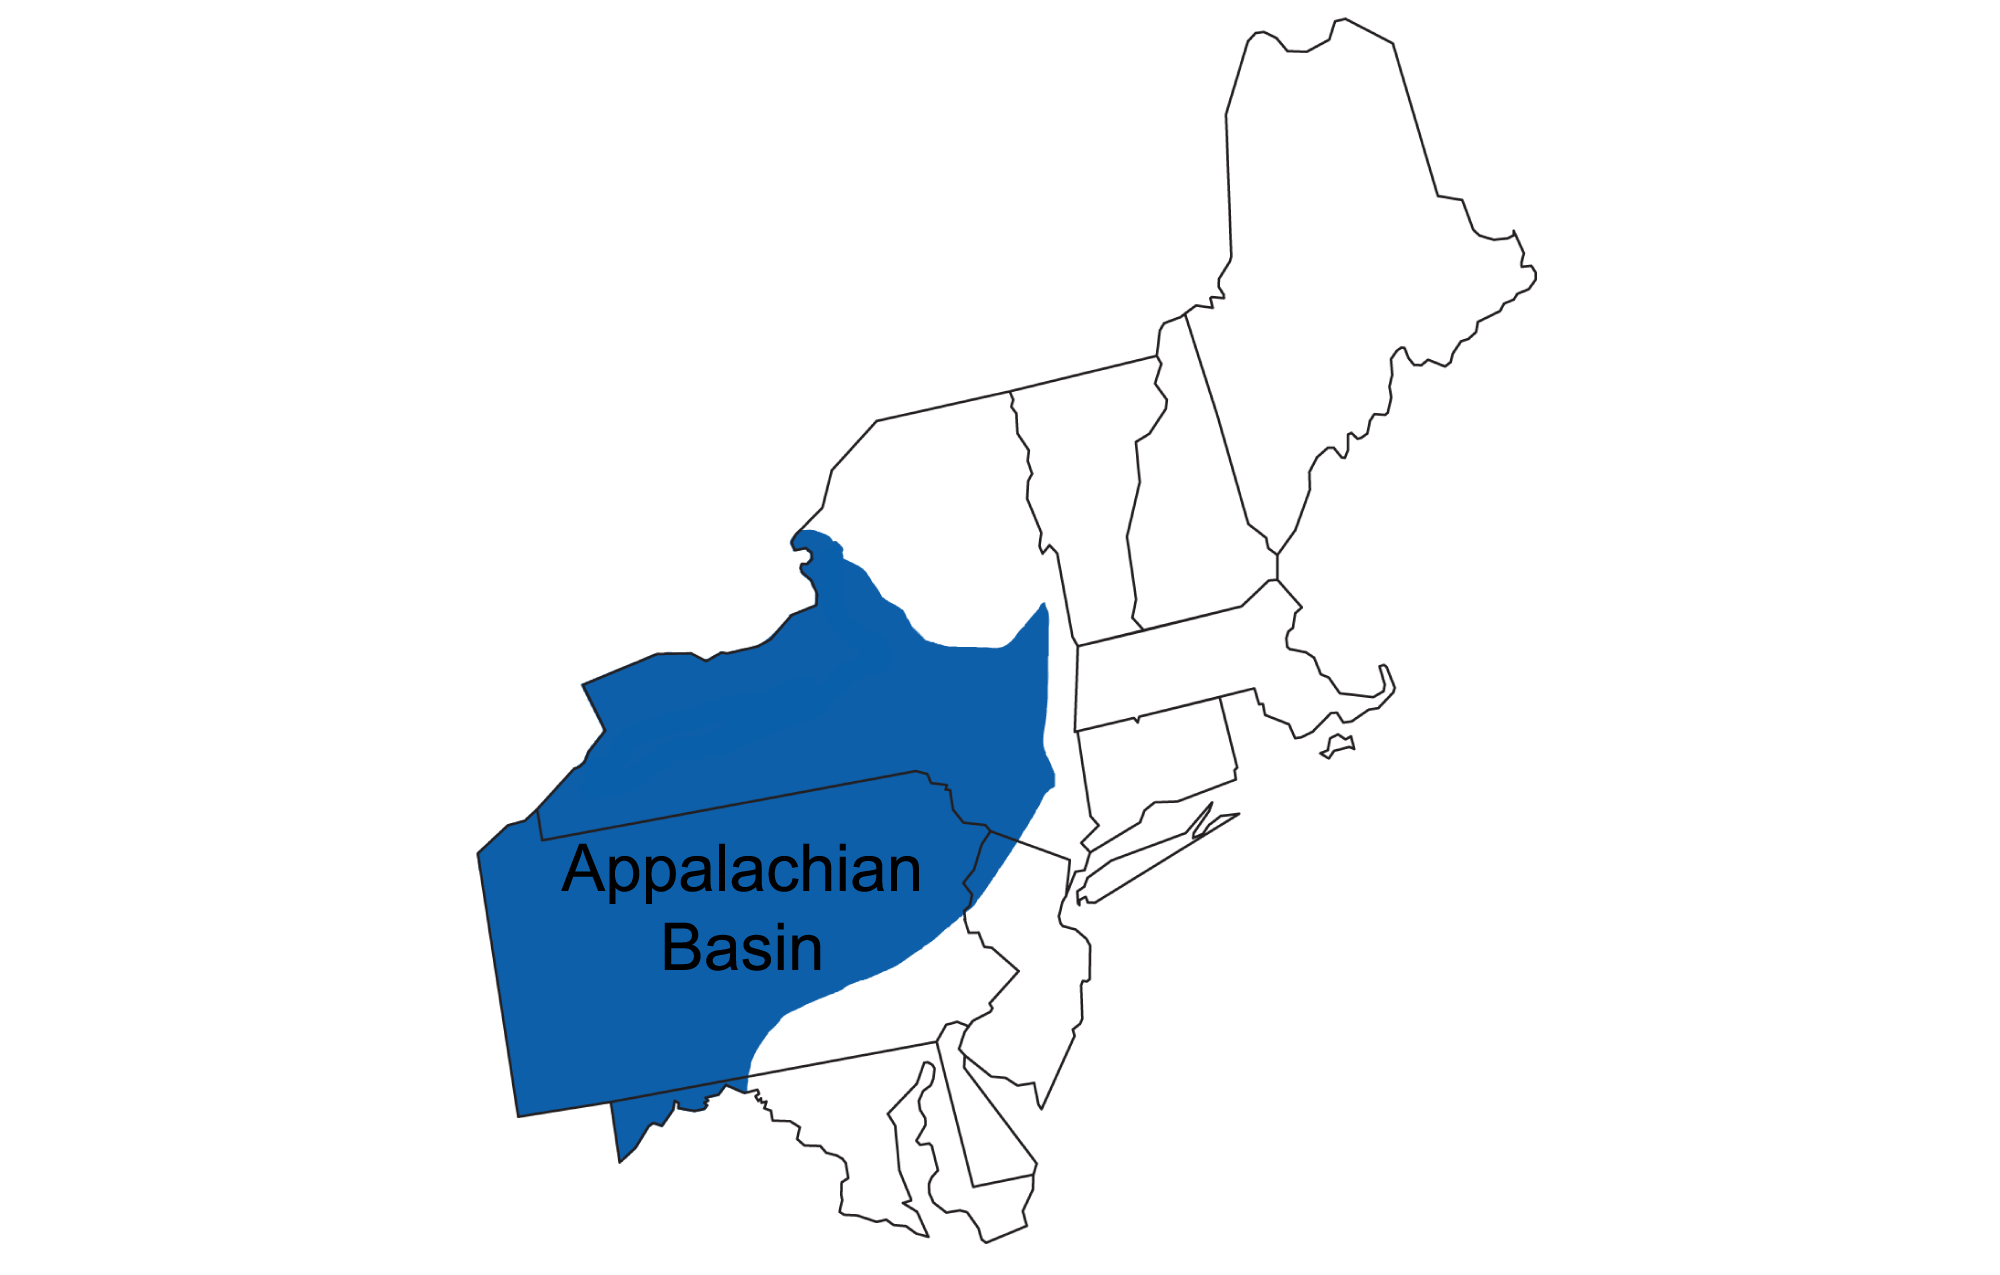 Map showing the position of the Appalachian basin.